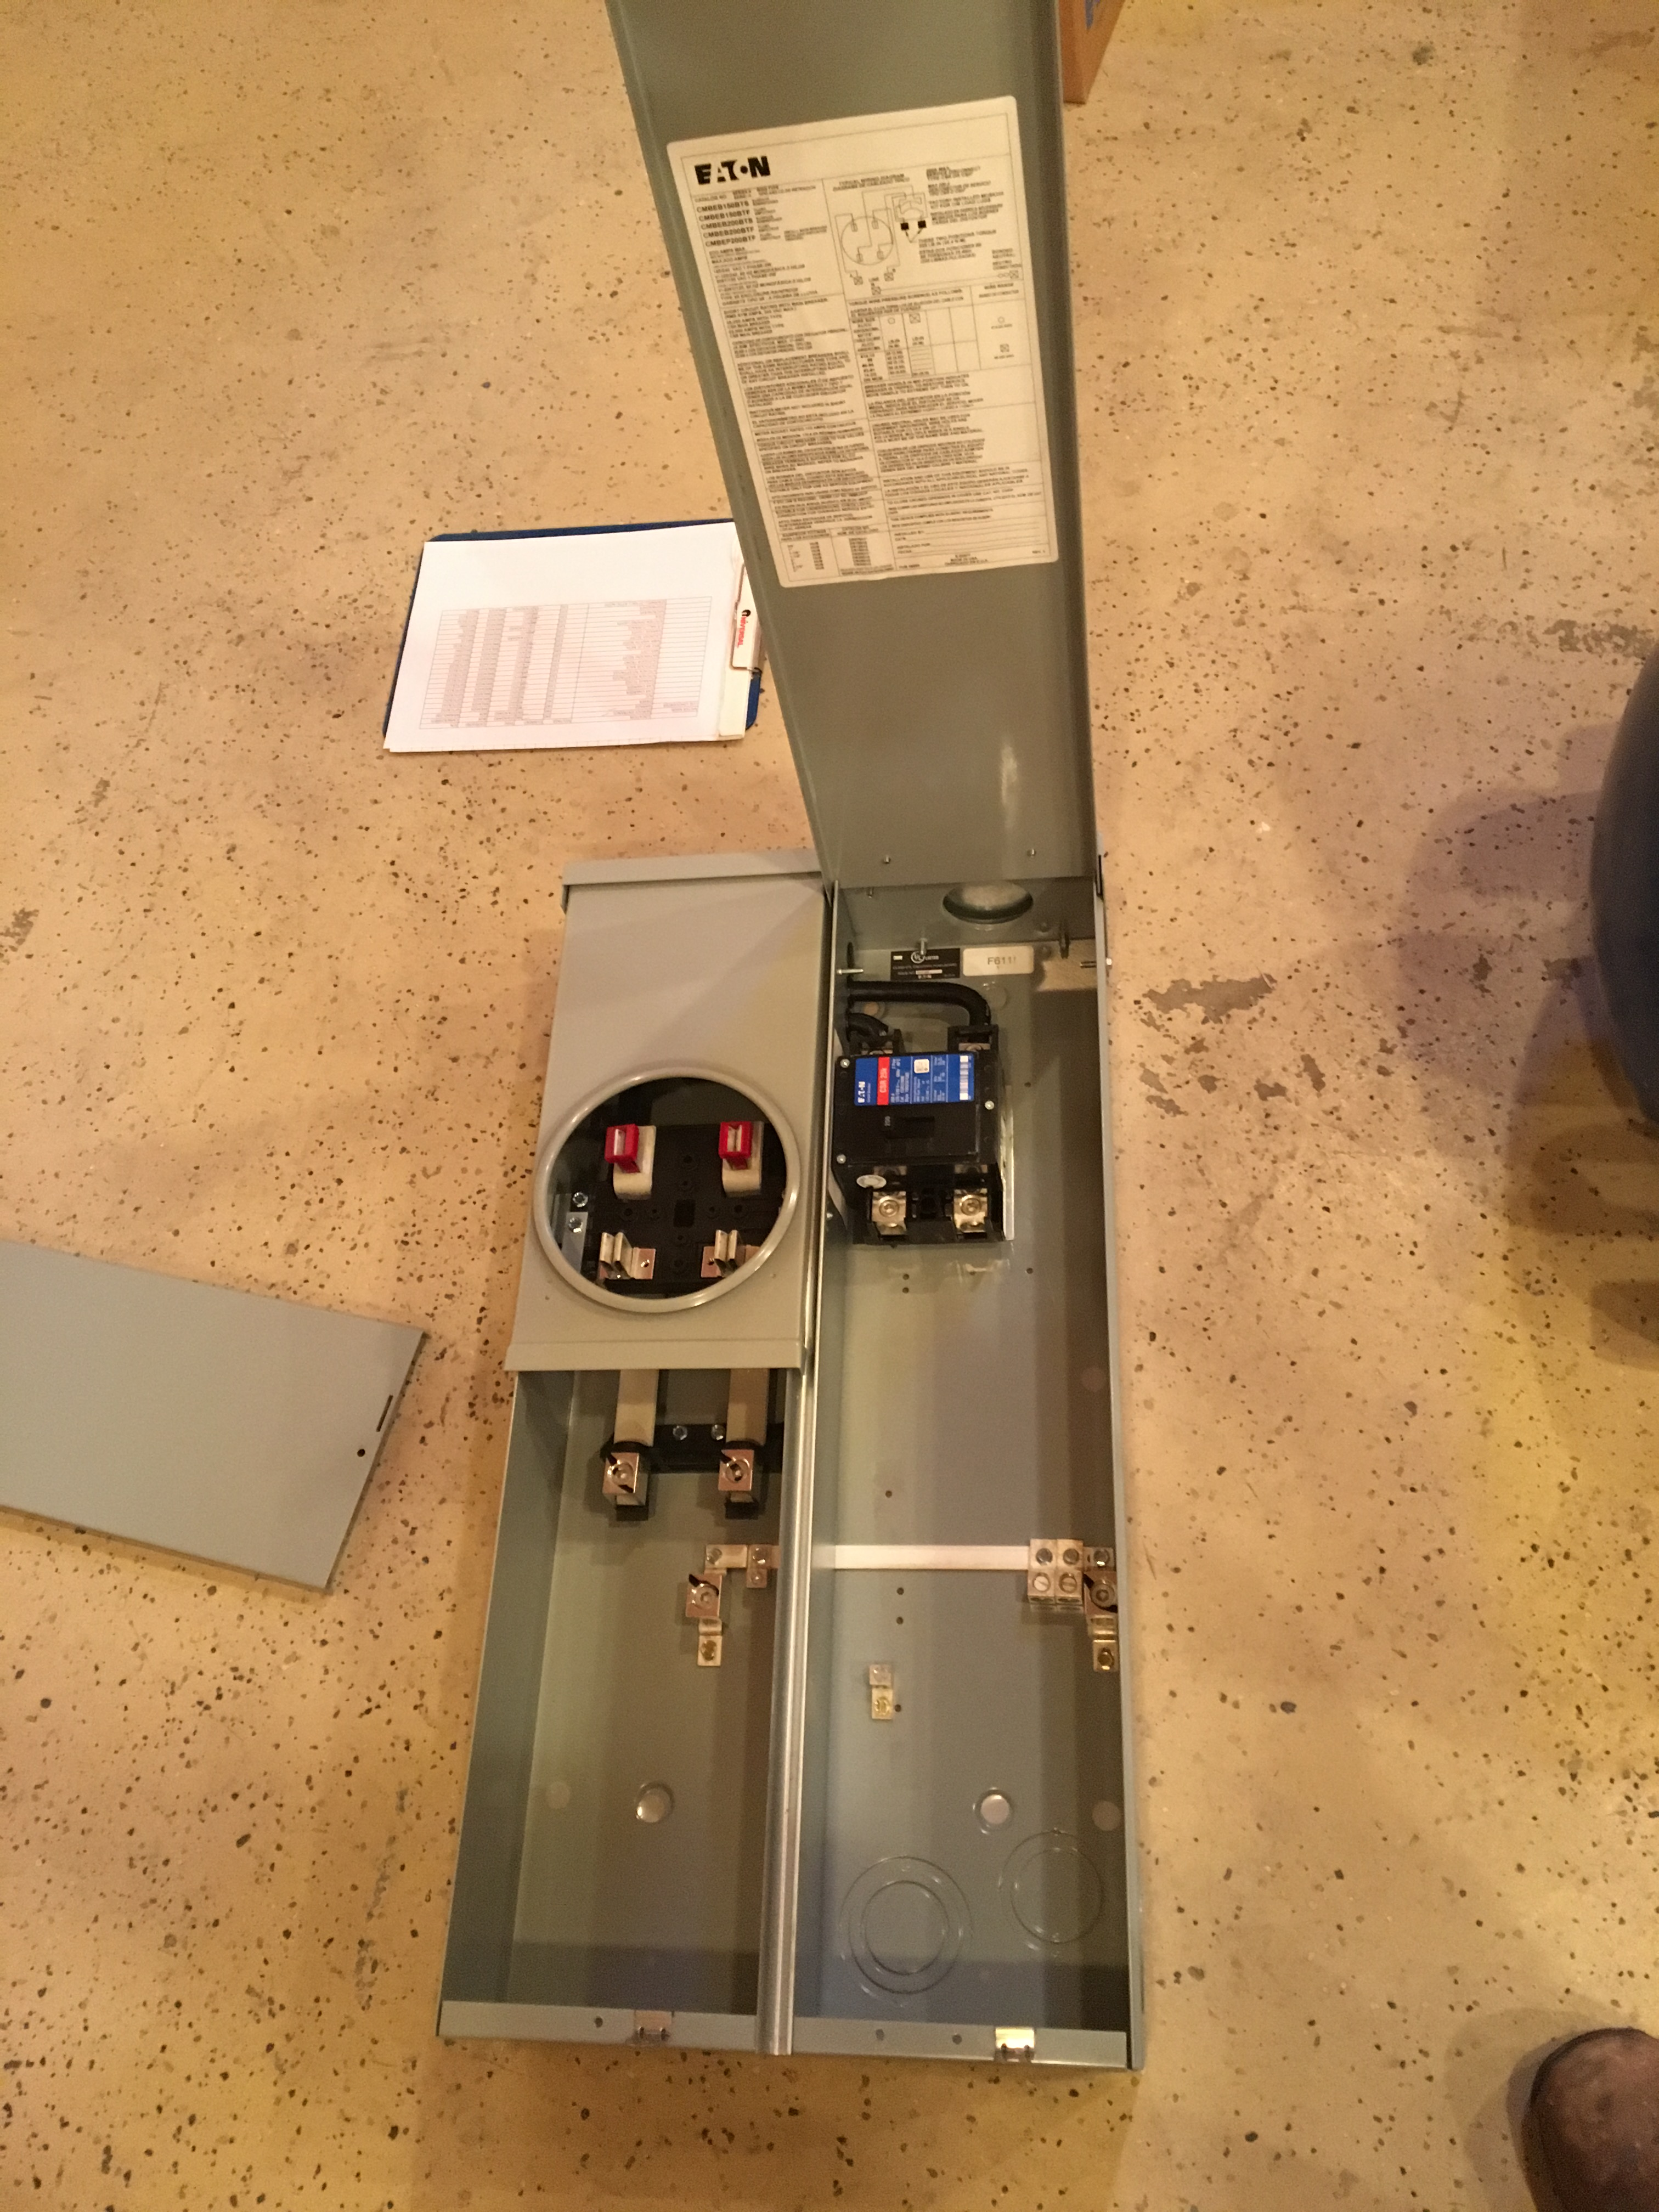 Electric Meter Panel : Electrical installation frank s home remodeling project